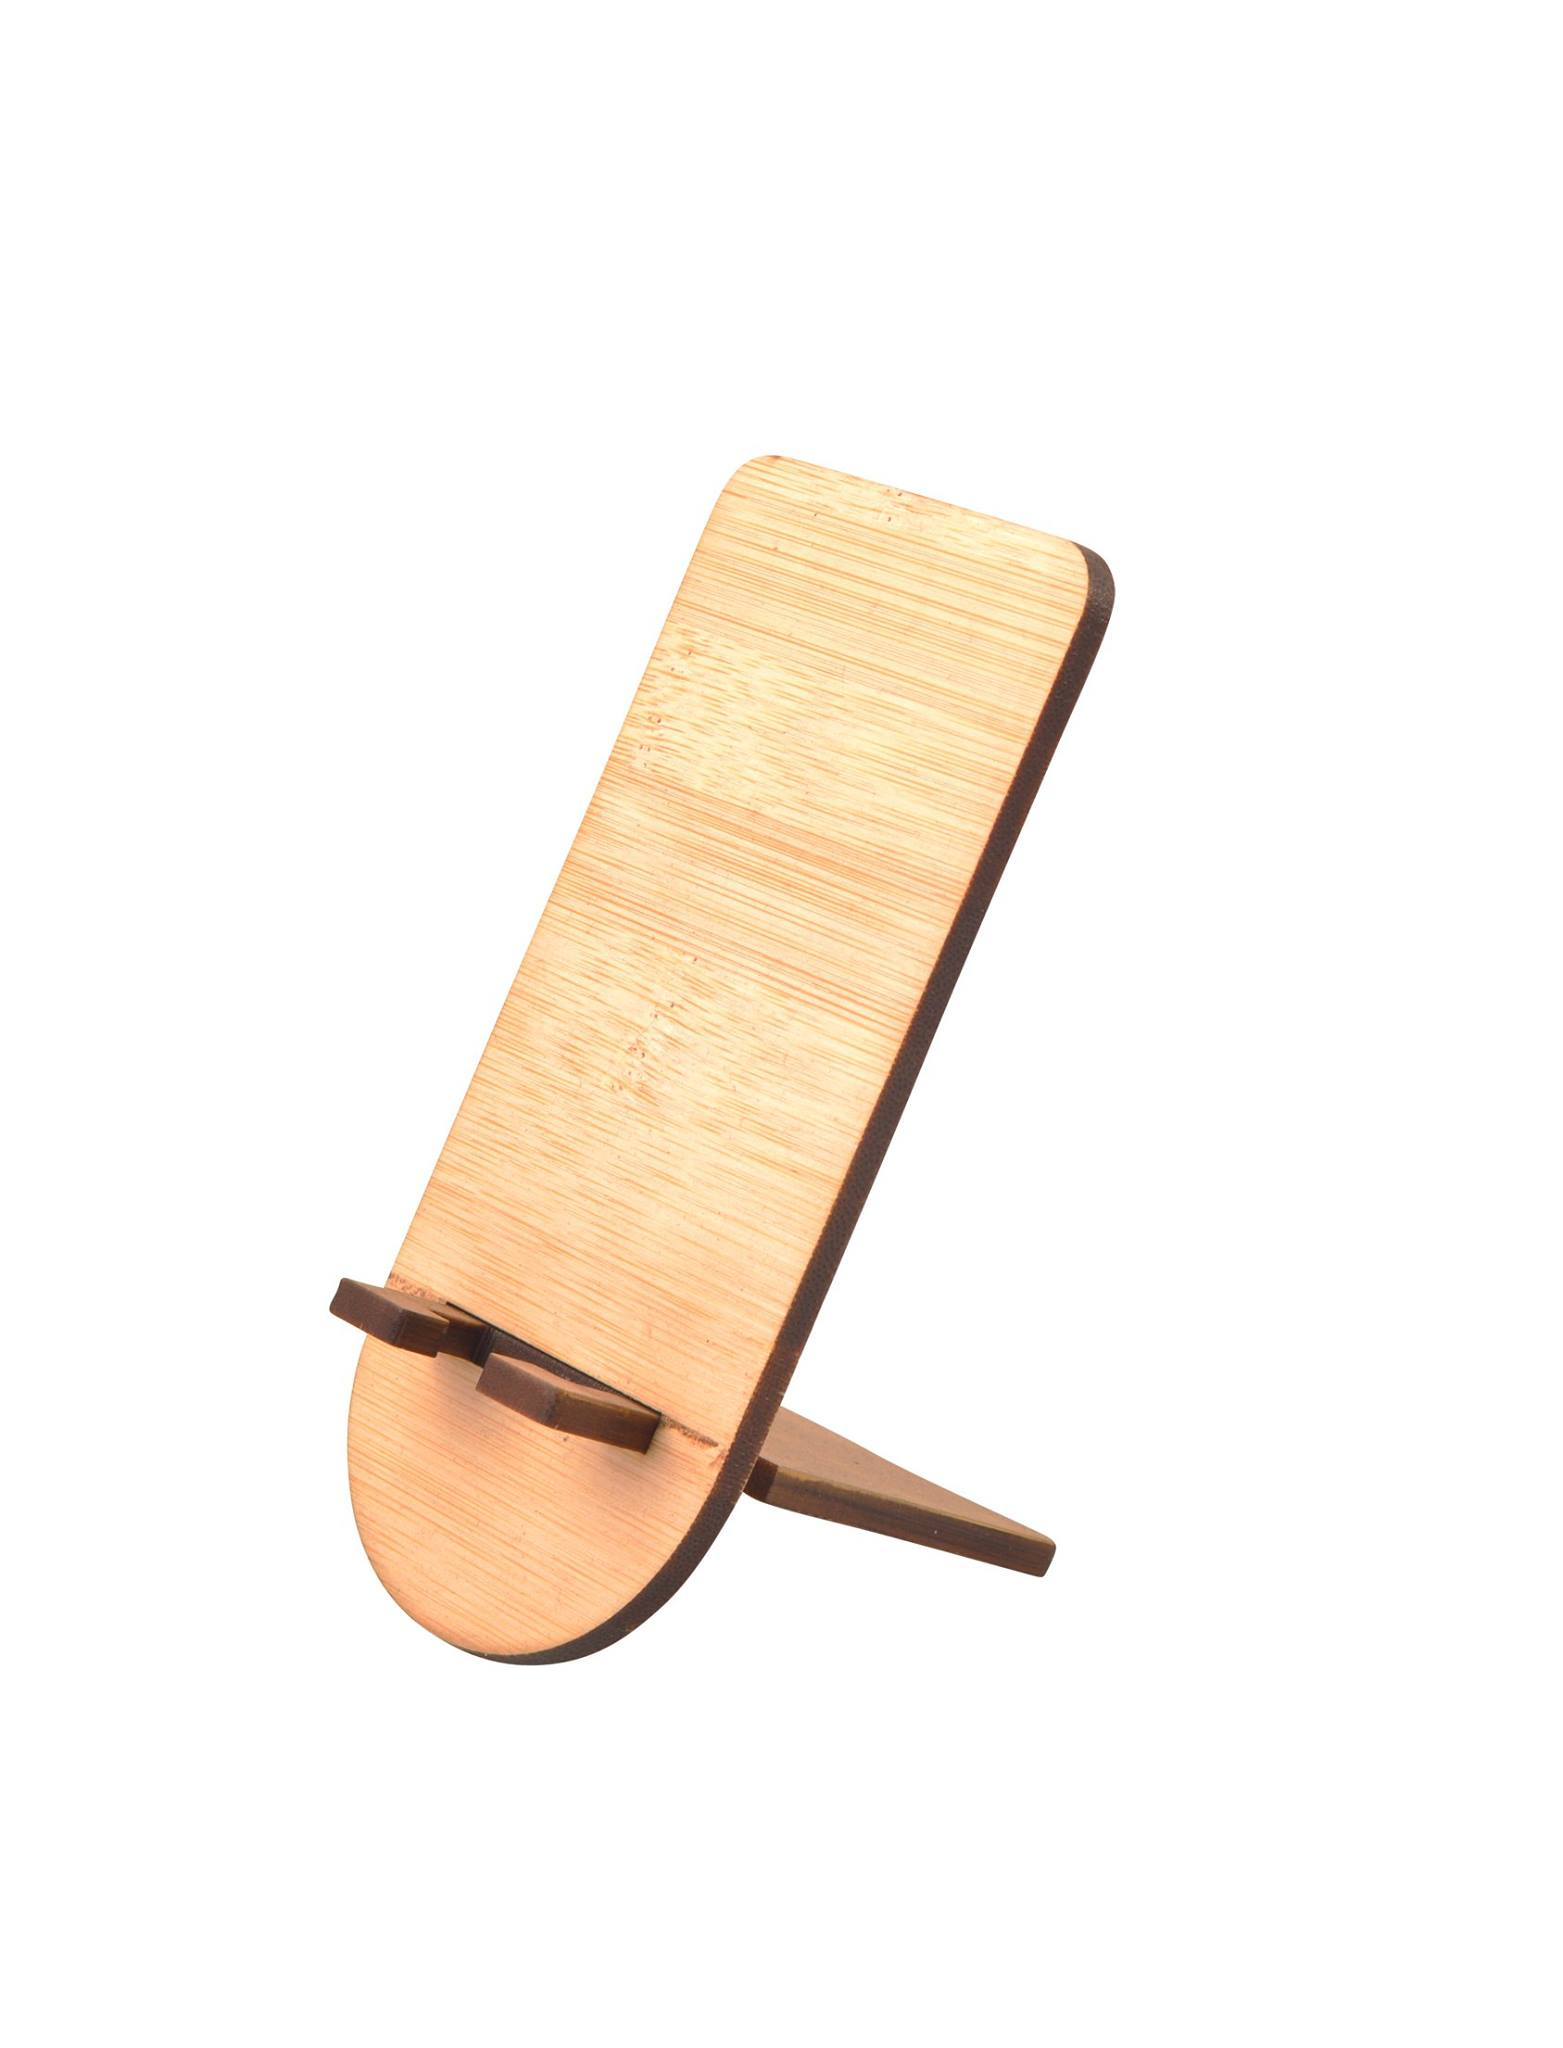 Bamboo Cellphone Stand